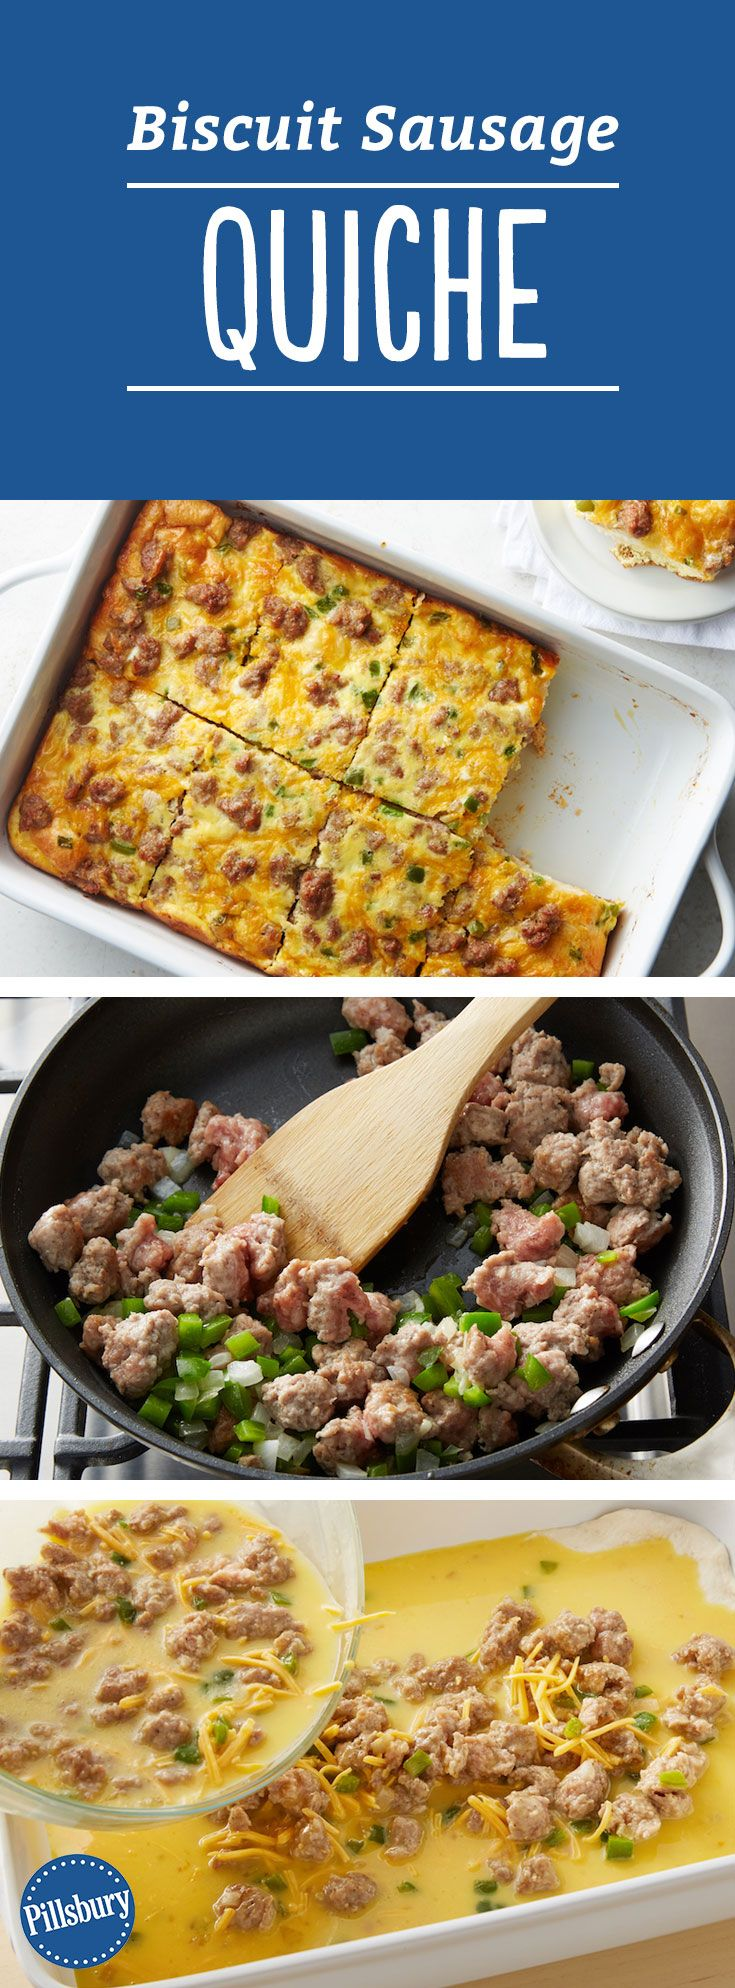 Biscuit Sausage Quiche: Flaky Pillsbury® Grands!® Biscuits make the crust in this easy breakfast bake.